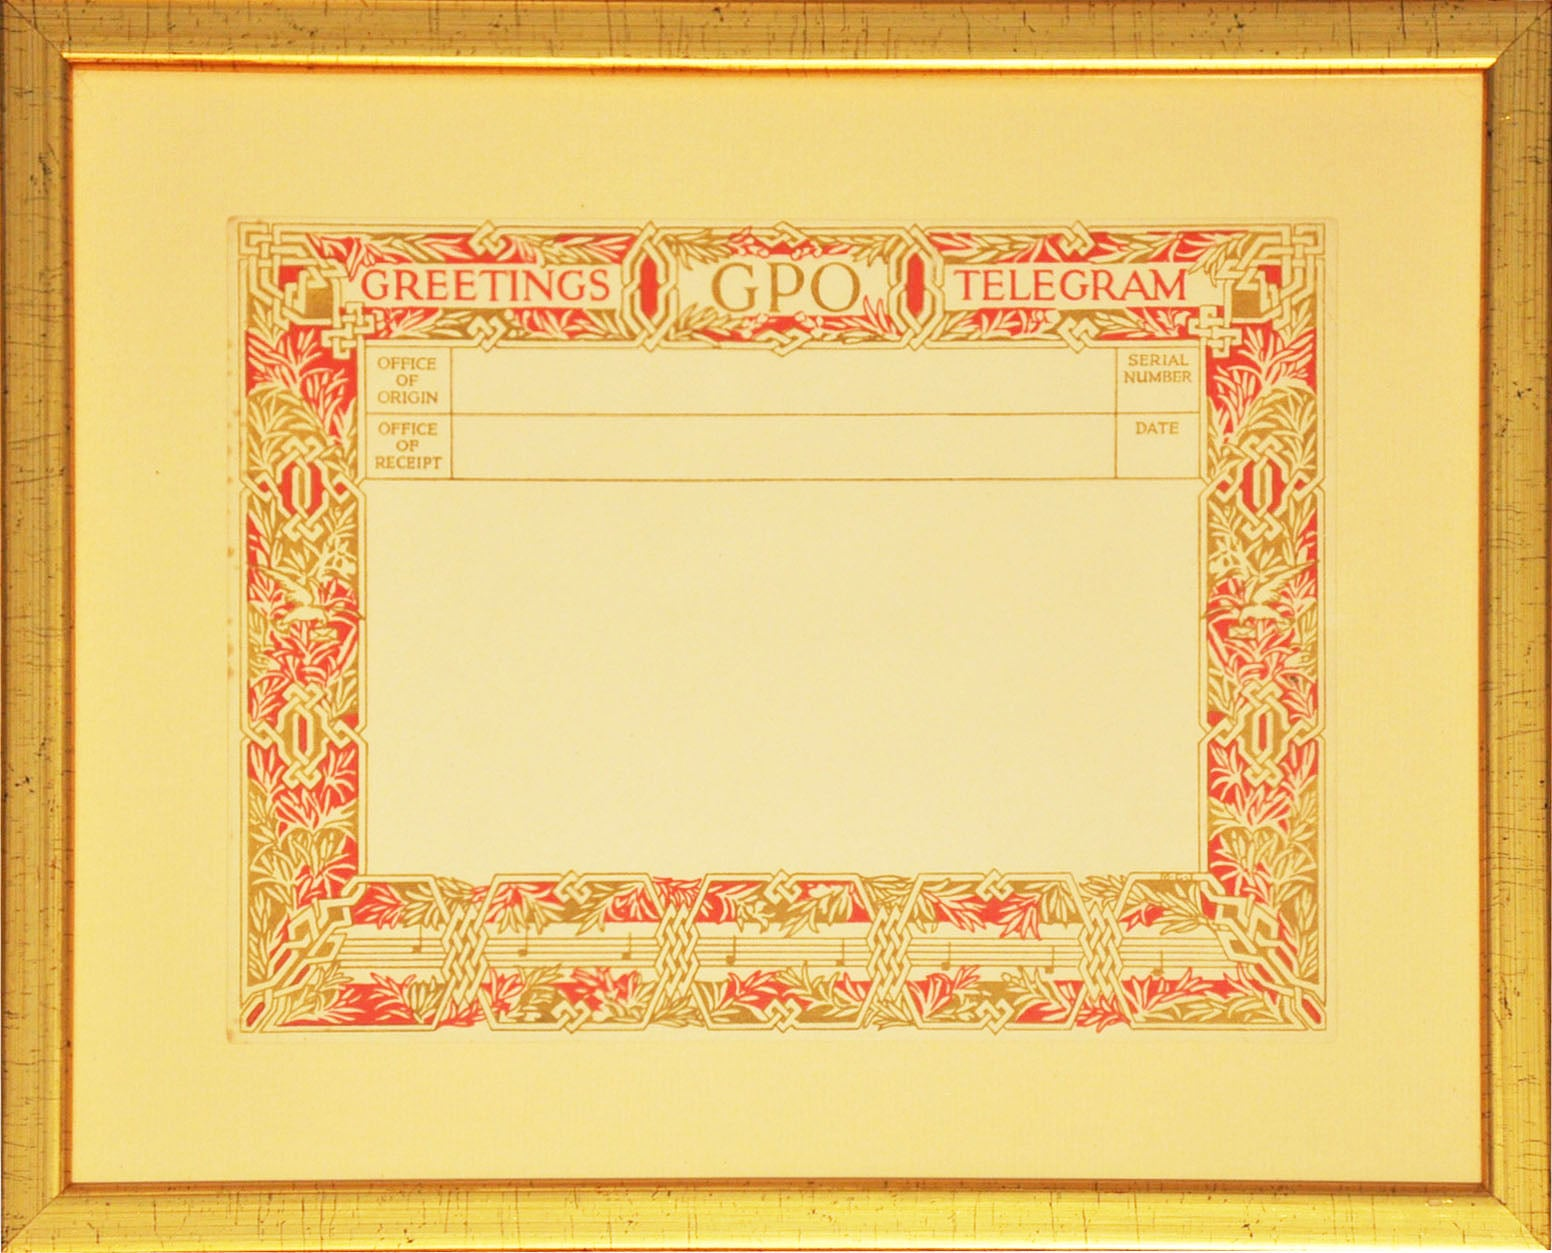 British Post Office Greetings Telegrams (1935-1978), after various artists